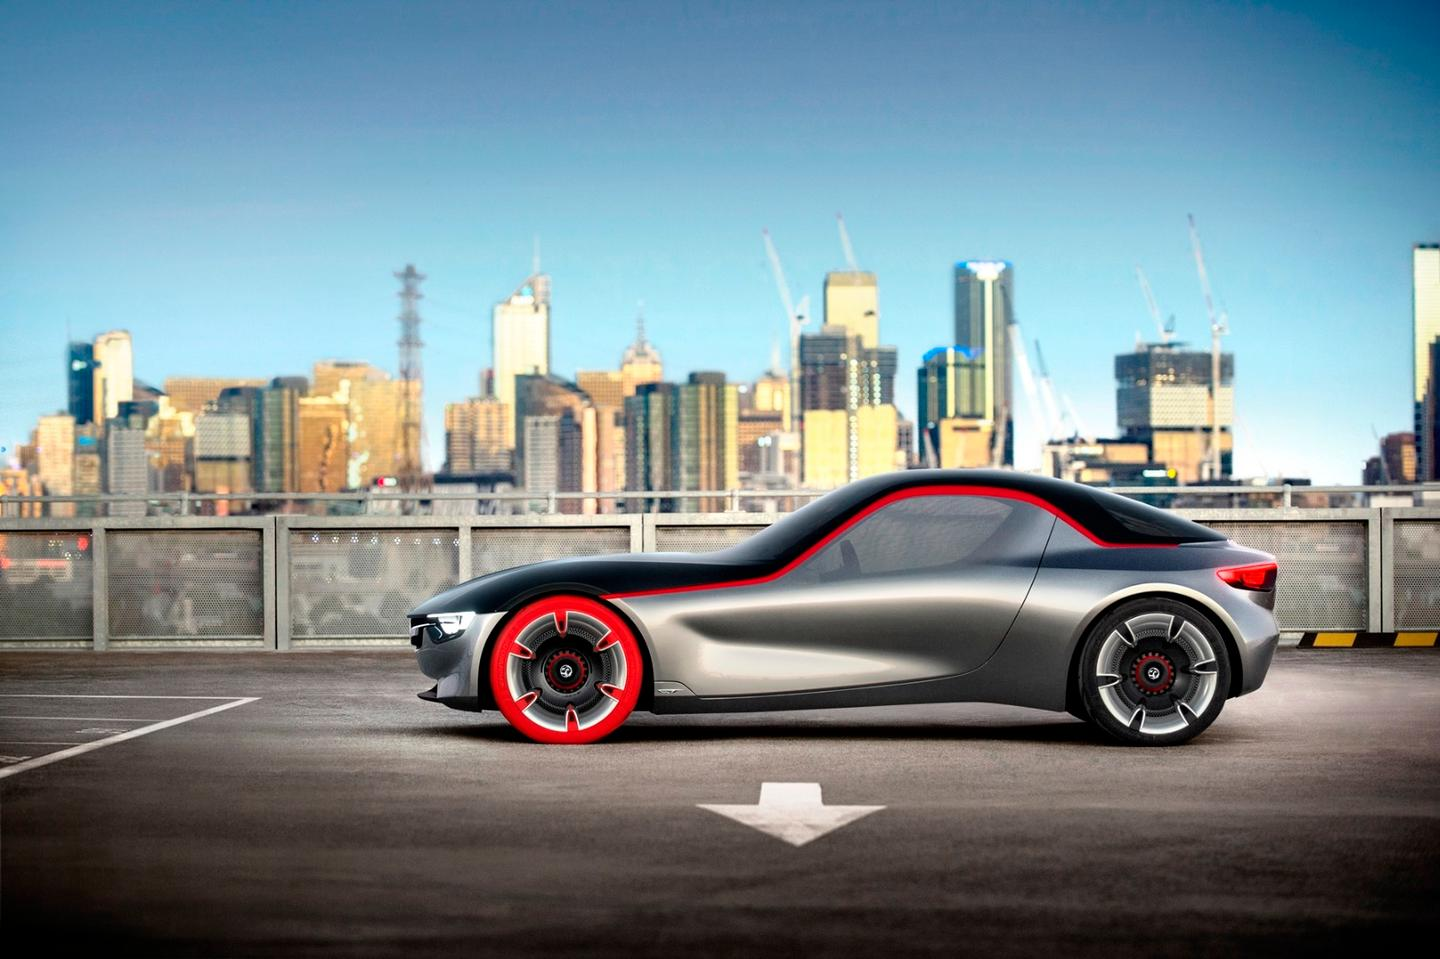 The GT Concept draws inspiration from the 1966 Vauxhall XVR and the 1965 Opel Experimental GT